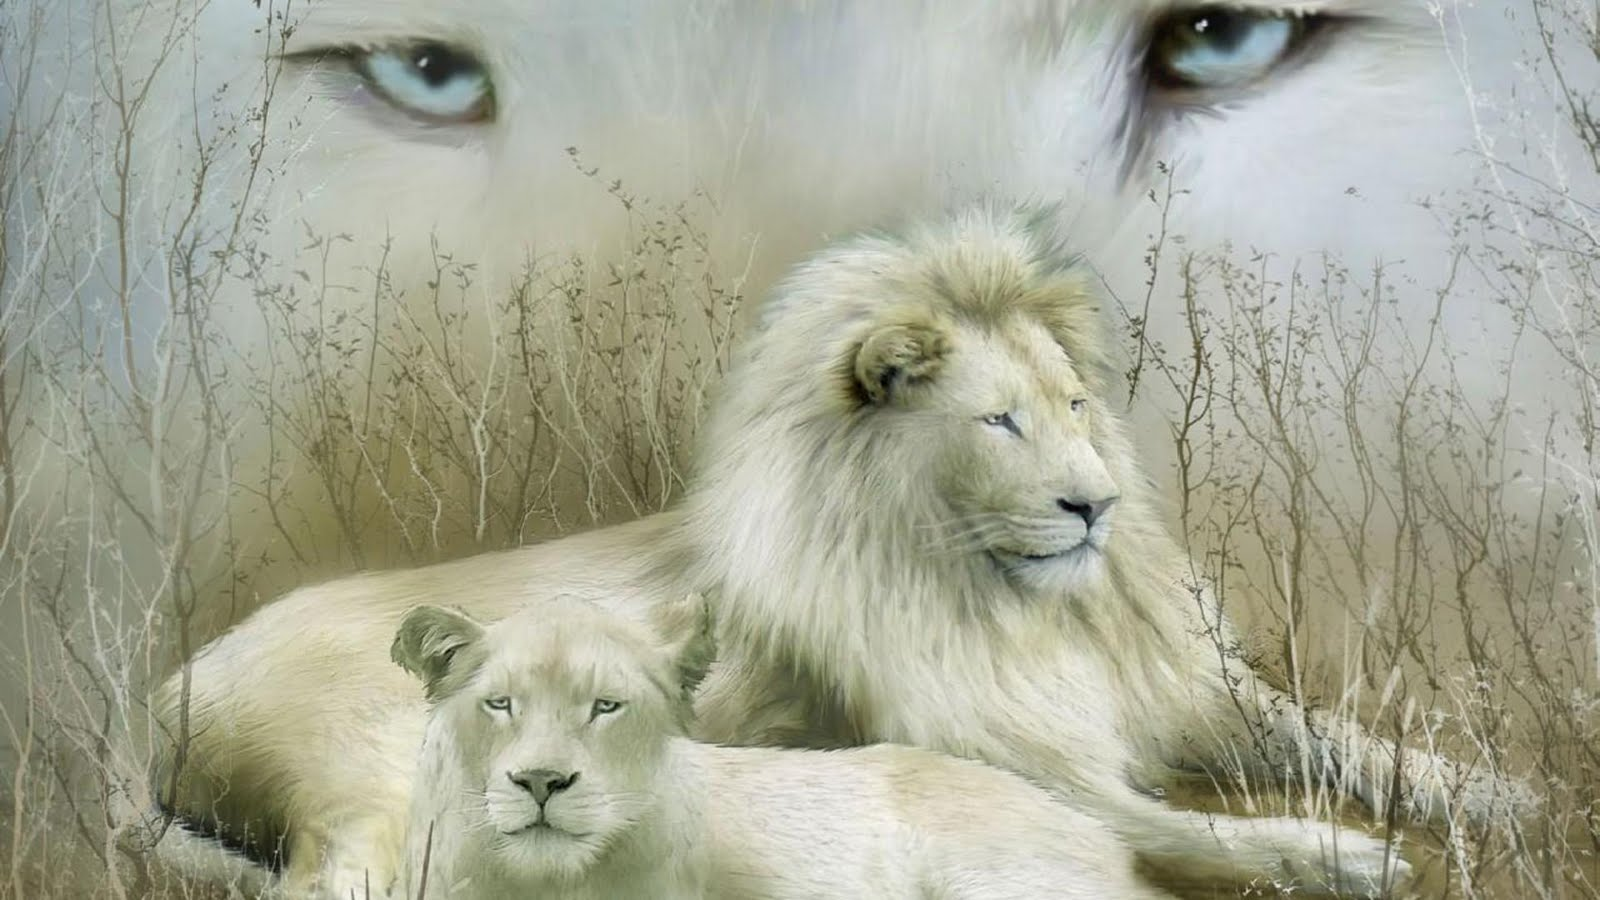 FunMozar A Curiosity Of Nature The White Lion